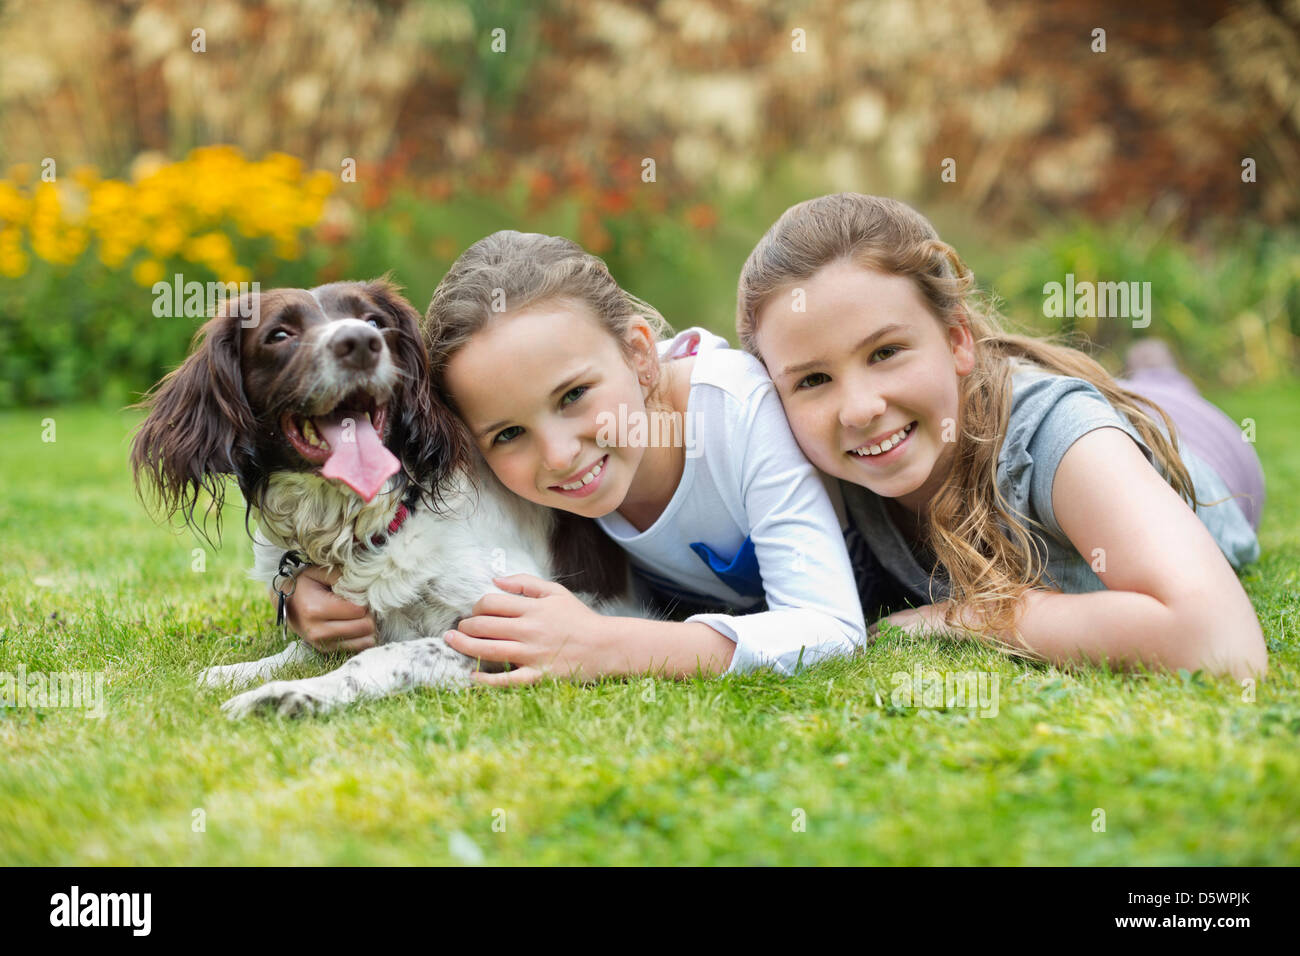 Smiling girls relaxing with dog on lawn Stock Photo